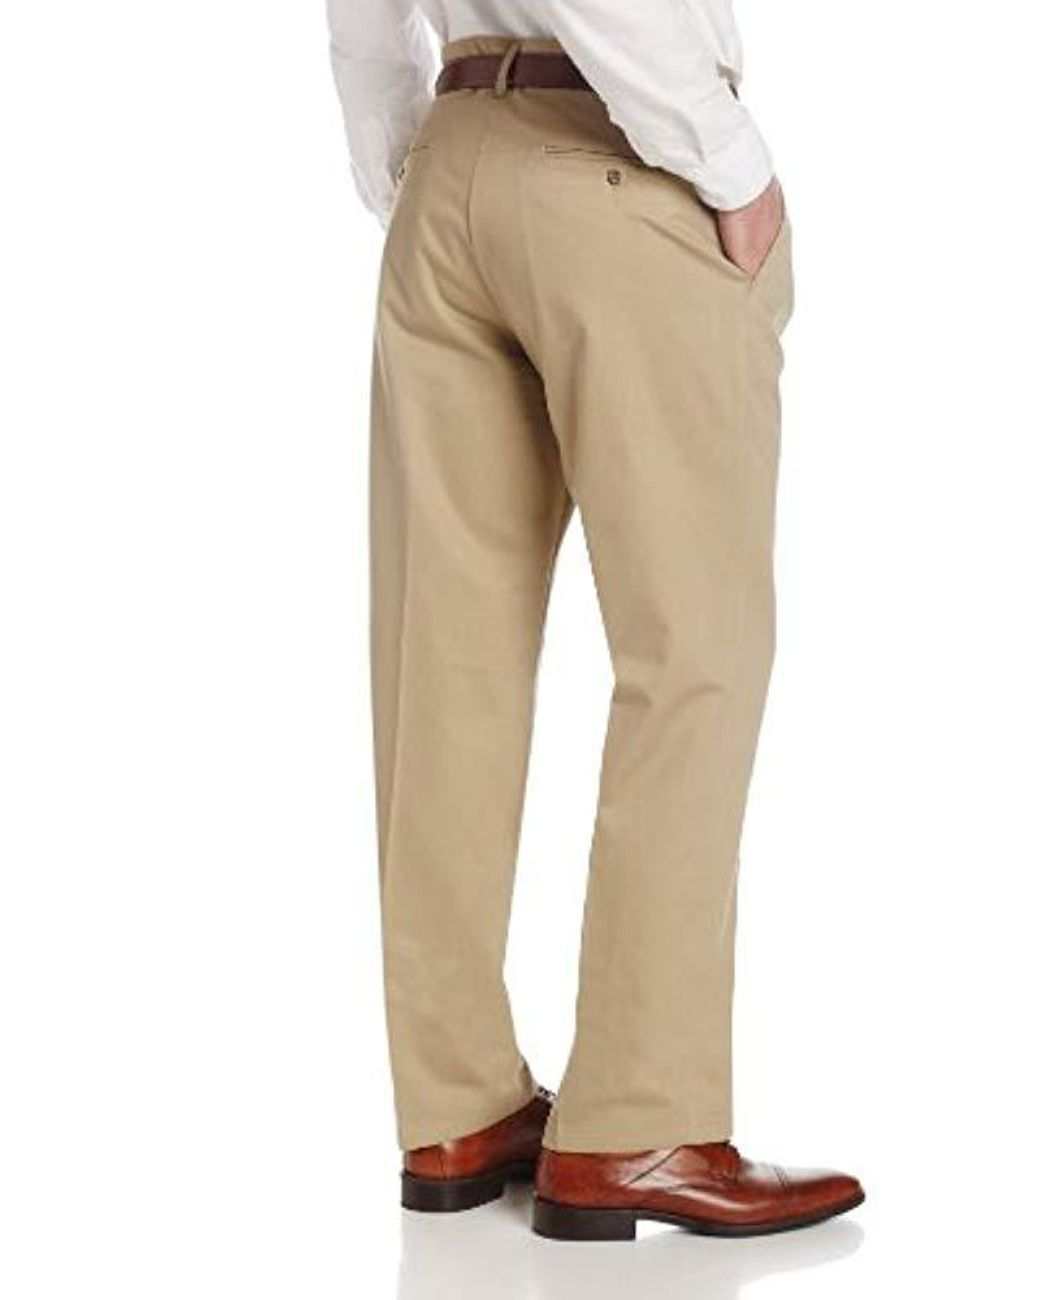 Lee Mens No Iron Relaxed Fit Pleated Pant